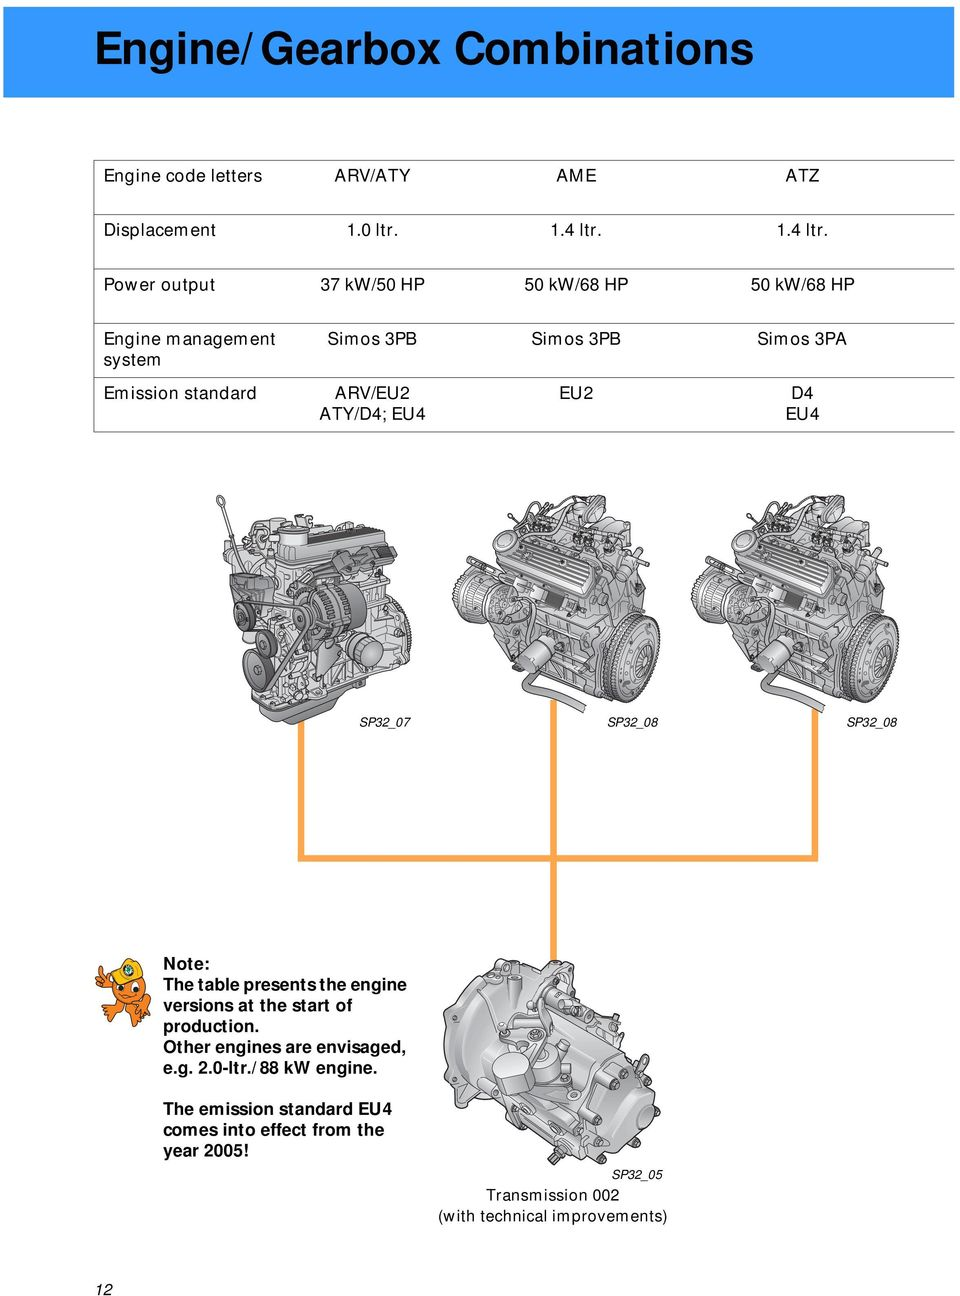 engine gearbox combinations pdf power output 37 kw 50 hp 50 kw 68 hp 50 kw 68